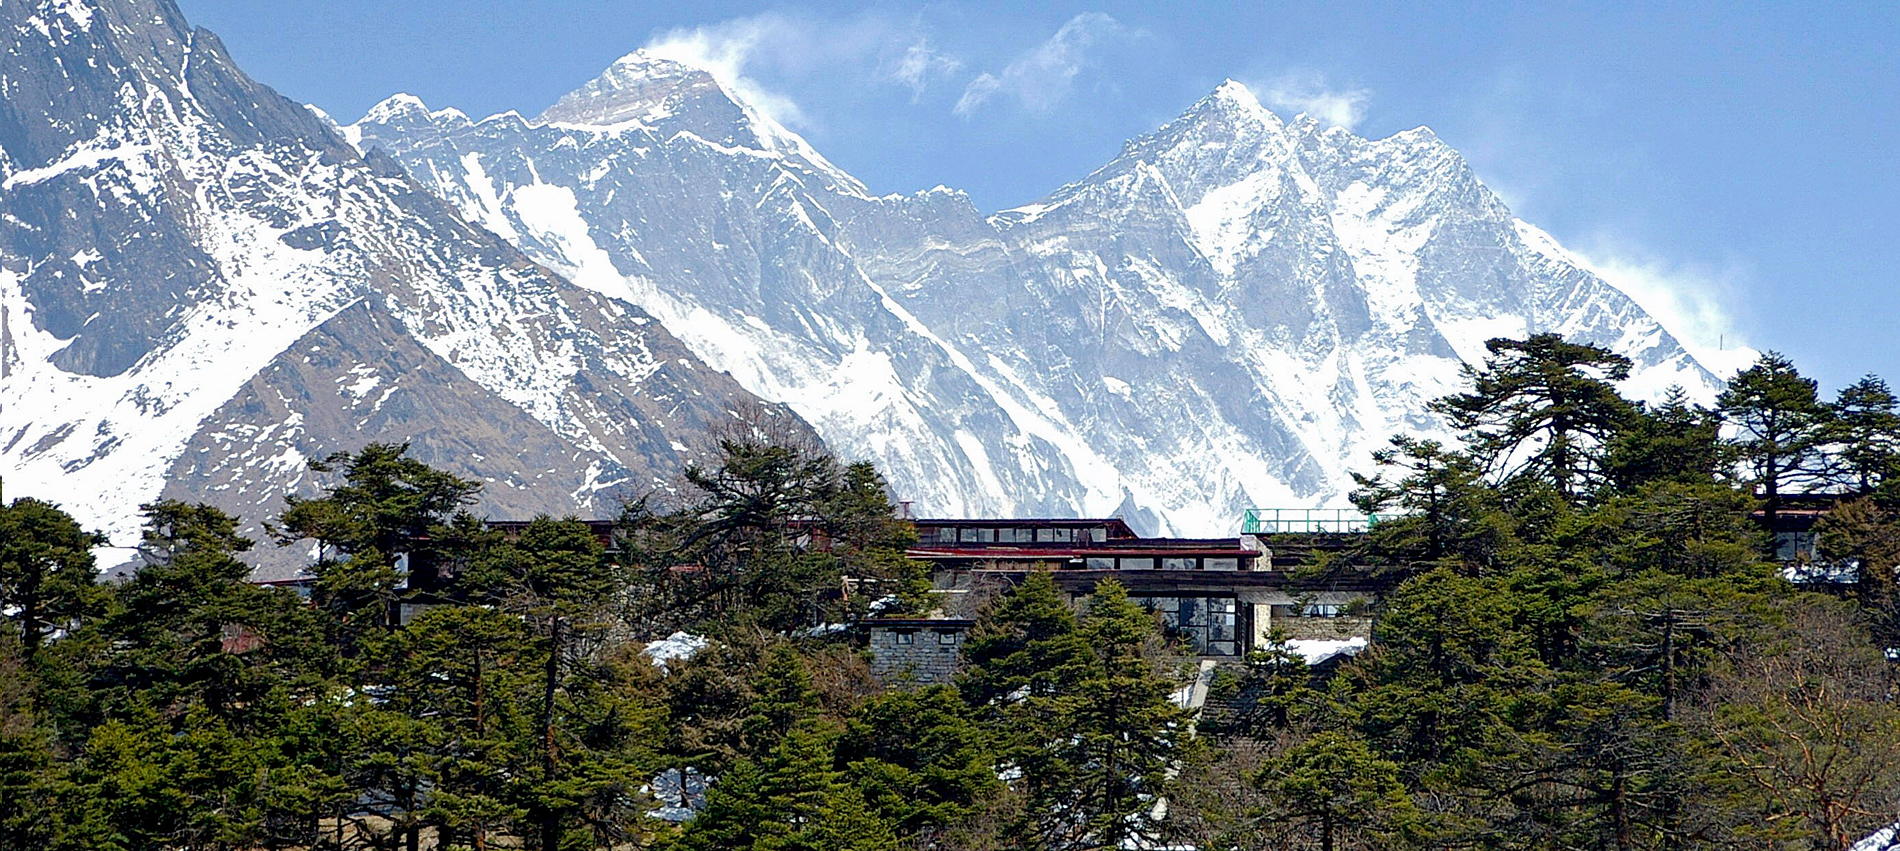 Accommodation in Everest Base Camp trek - Hotel Everest View